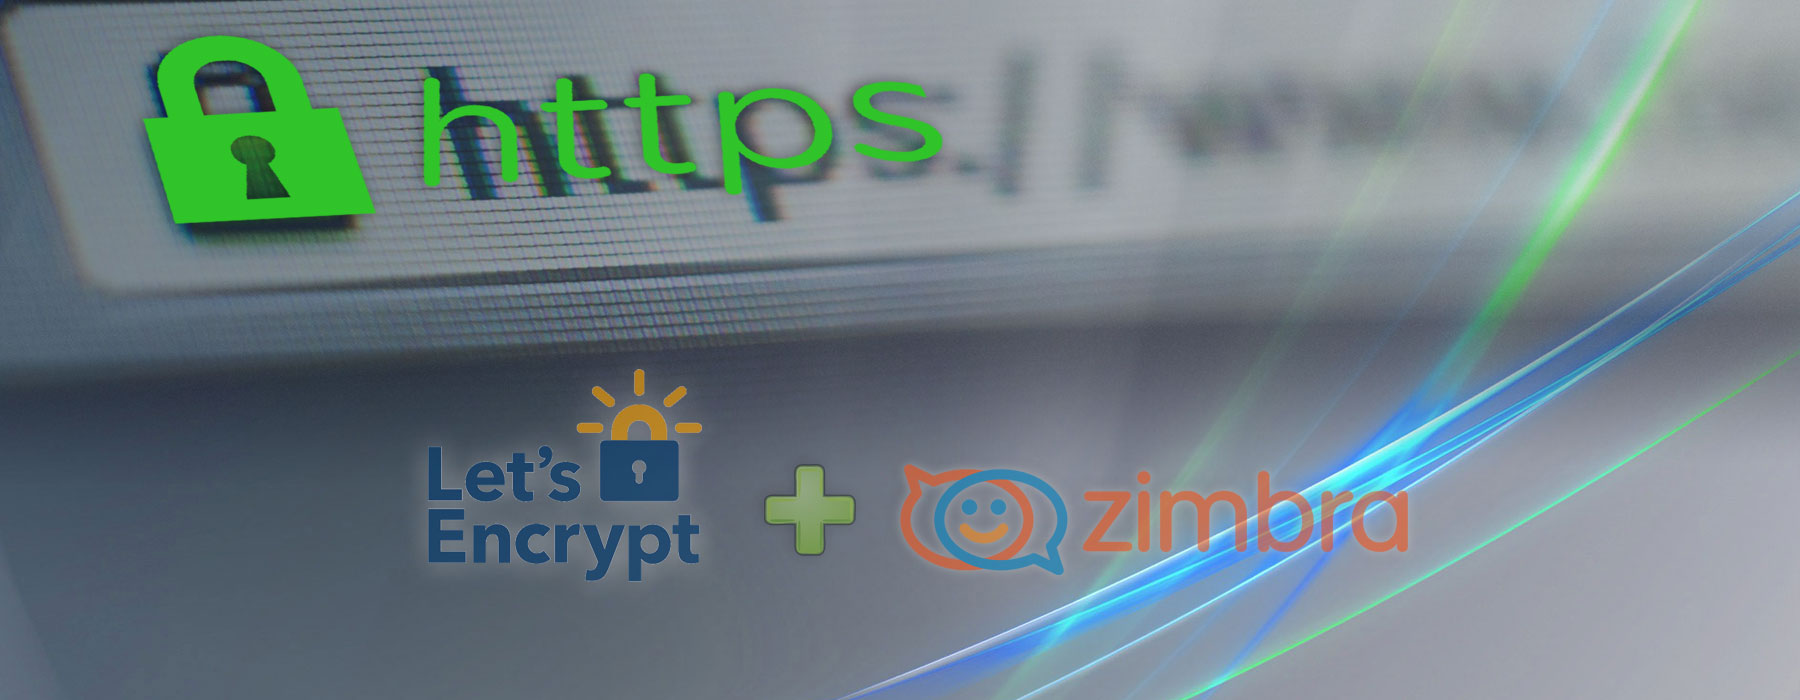 Setup Letsencrypt for Zimbra 8.70 on Ubuntu 16.04 LTS